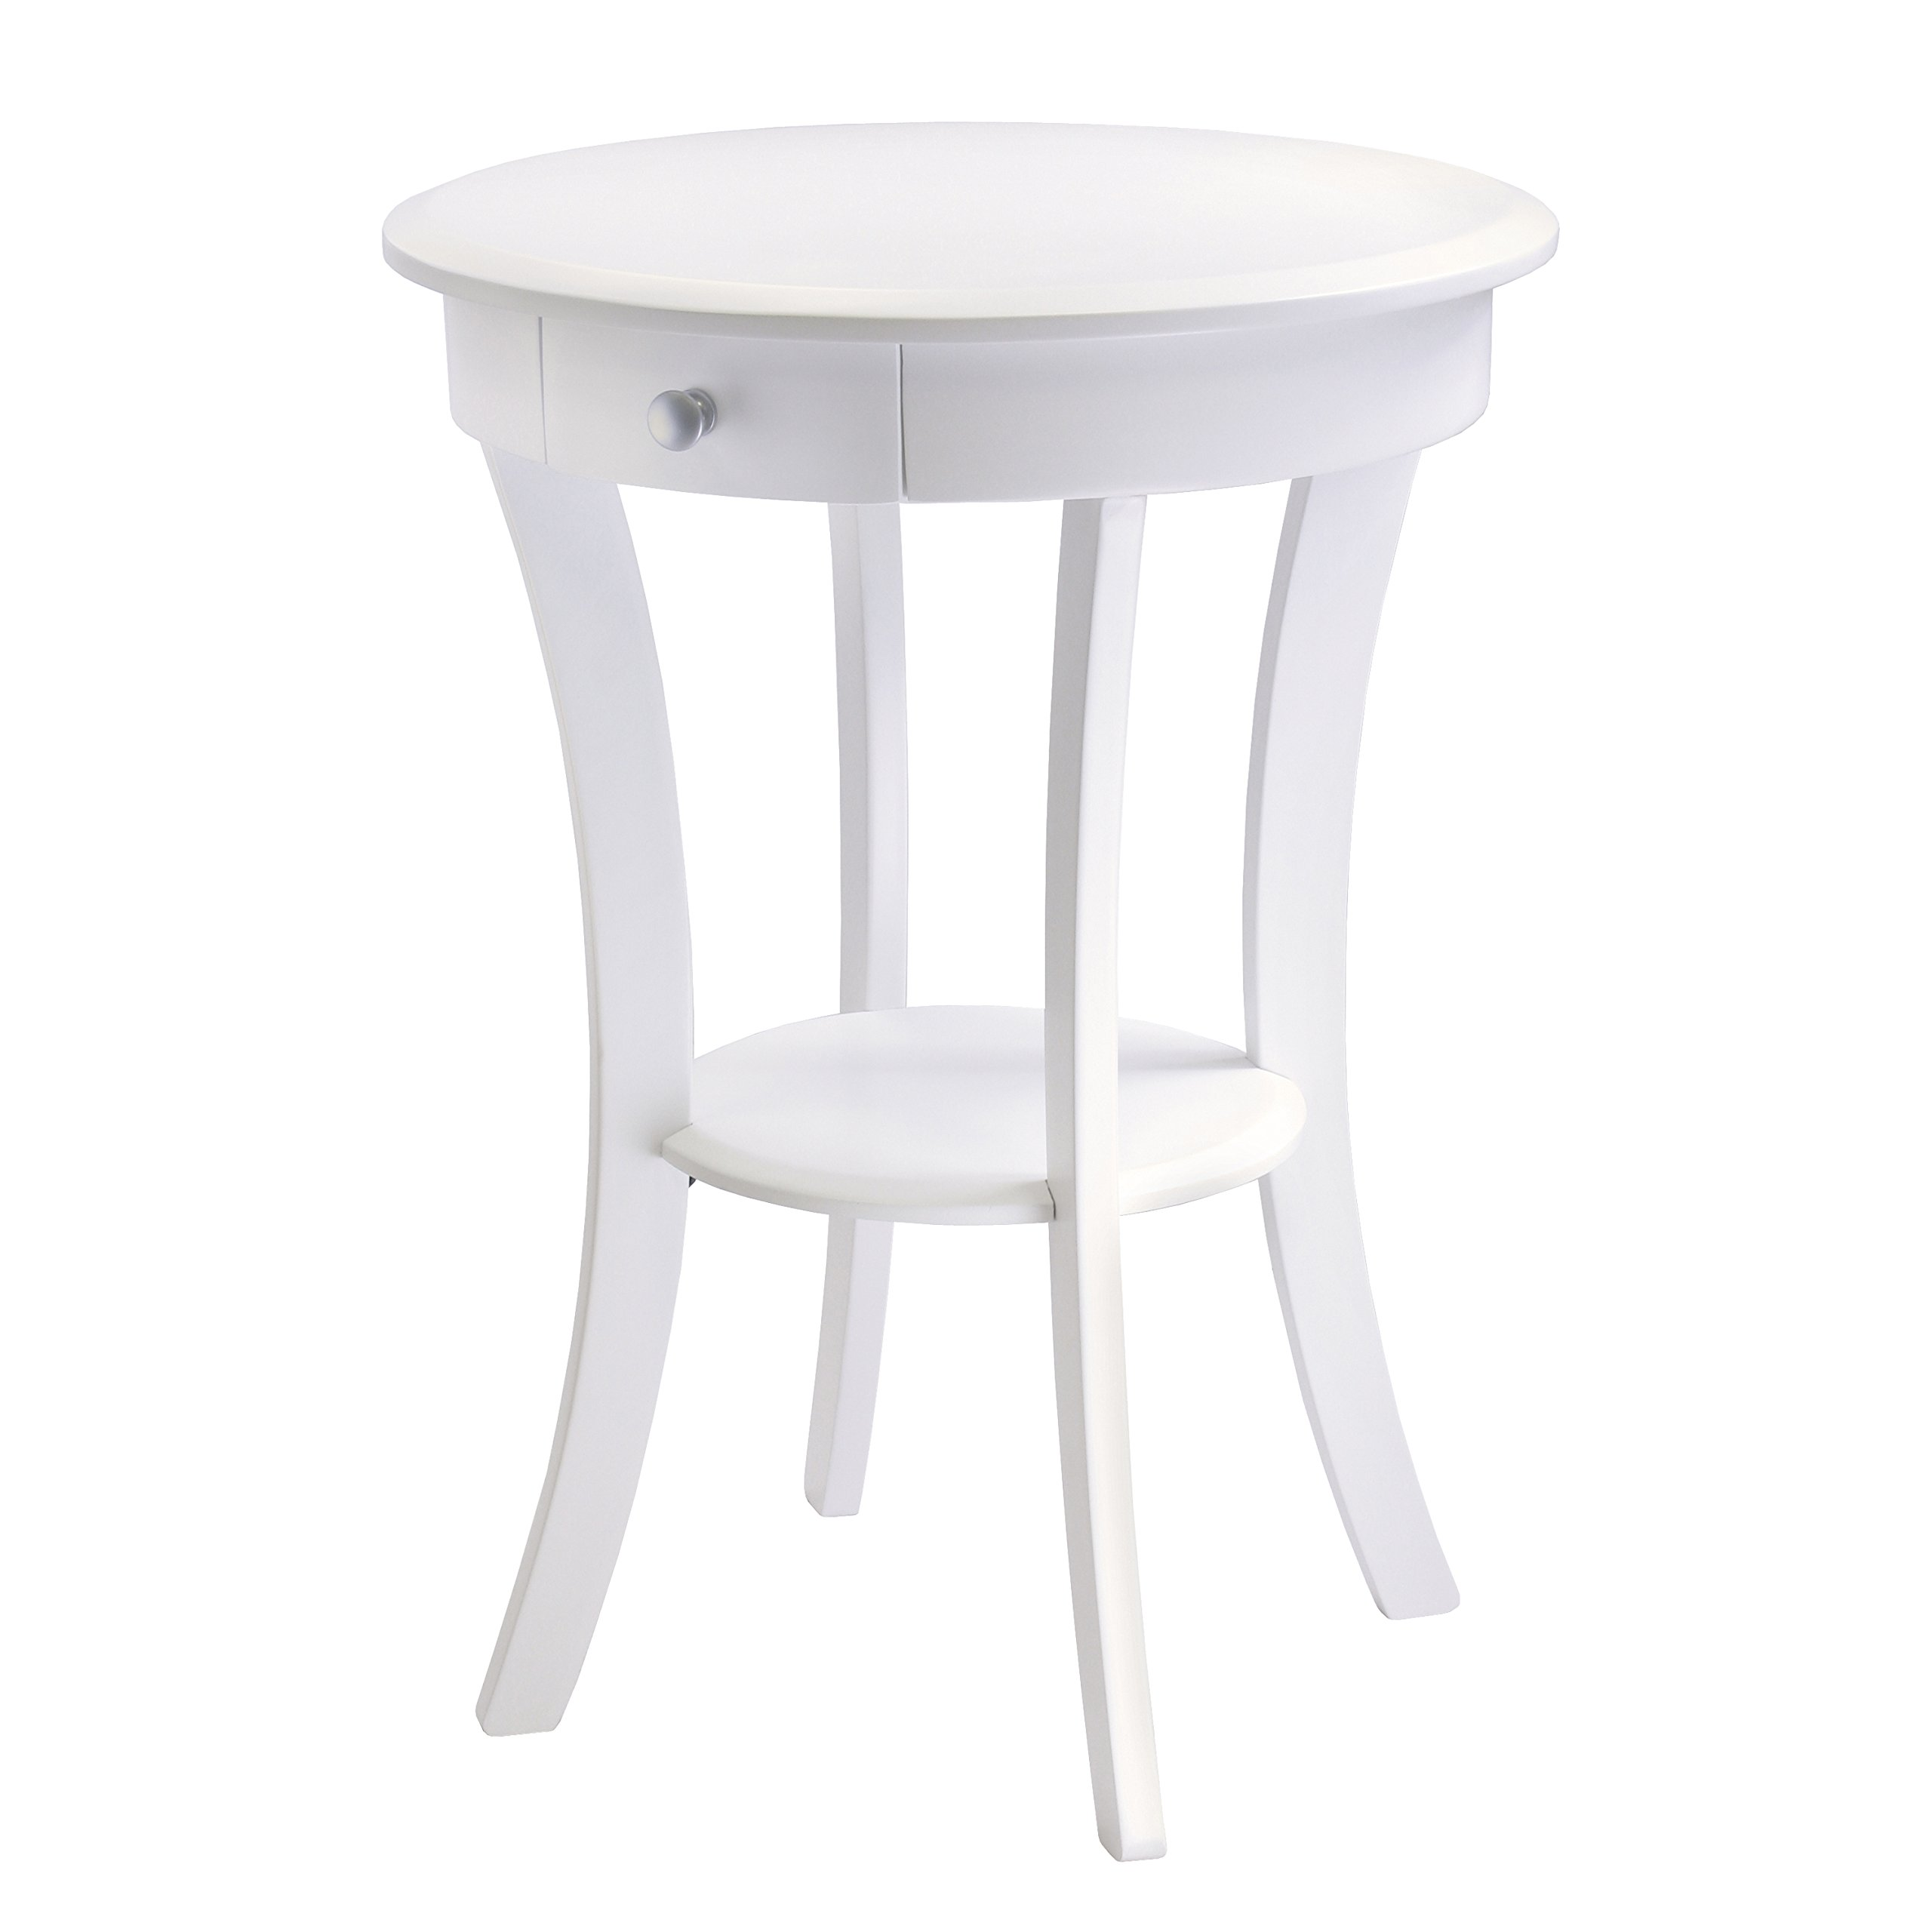 living cabinet threshold tables room round target table bench furniture antique and for tall ott gold outdoor decorative white modern glass accent kijiji full size drop leaf